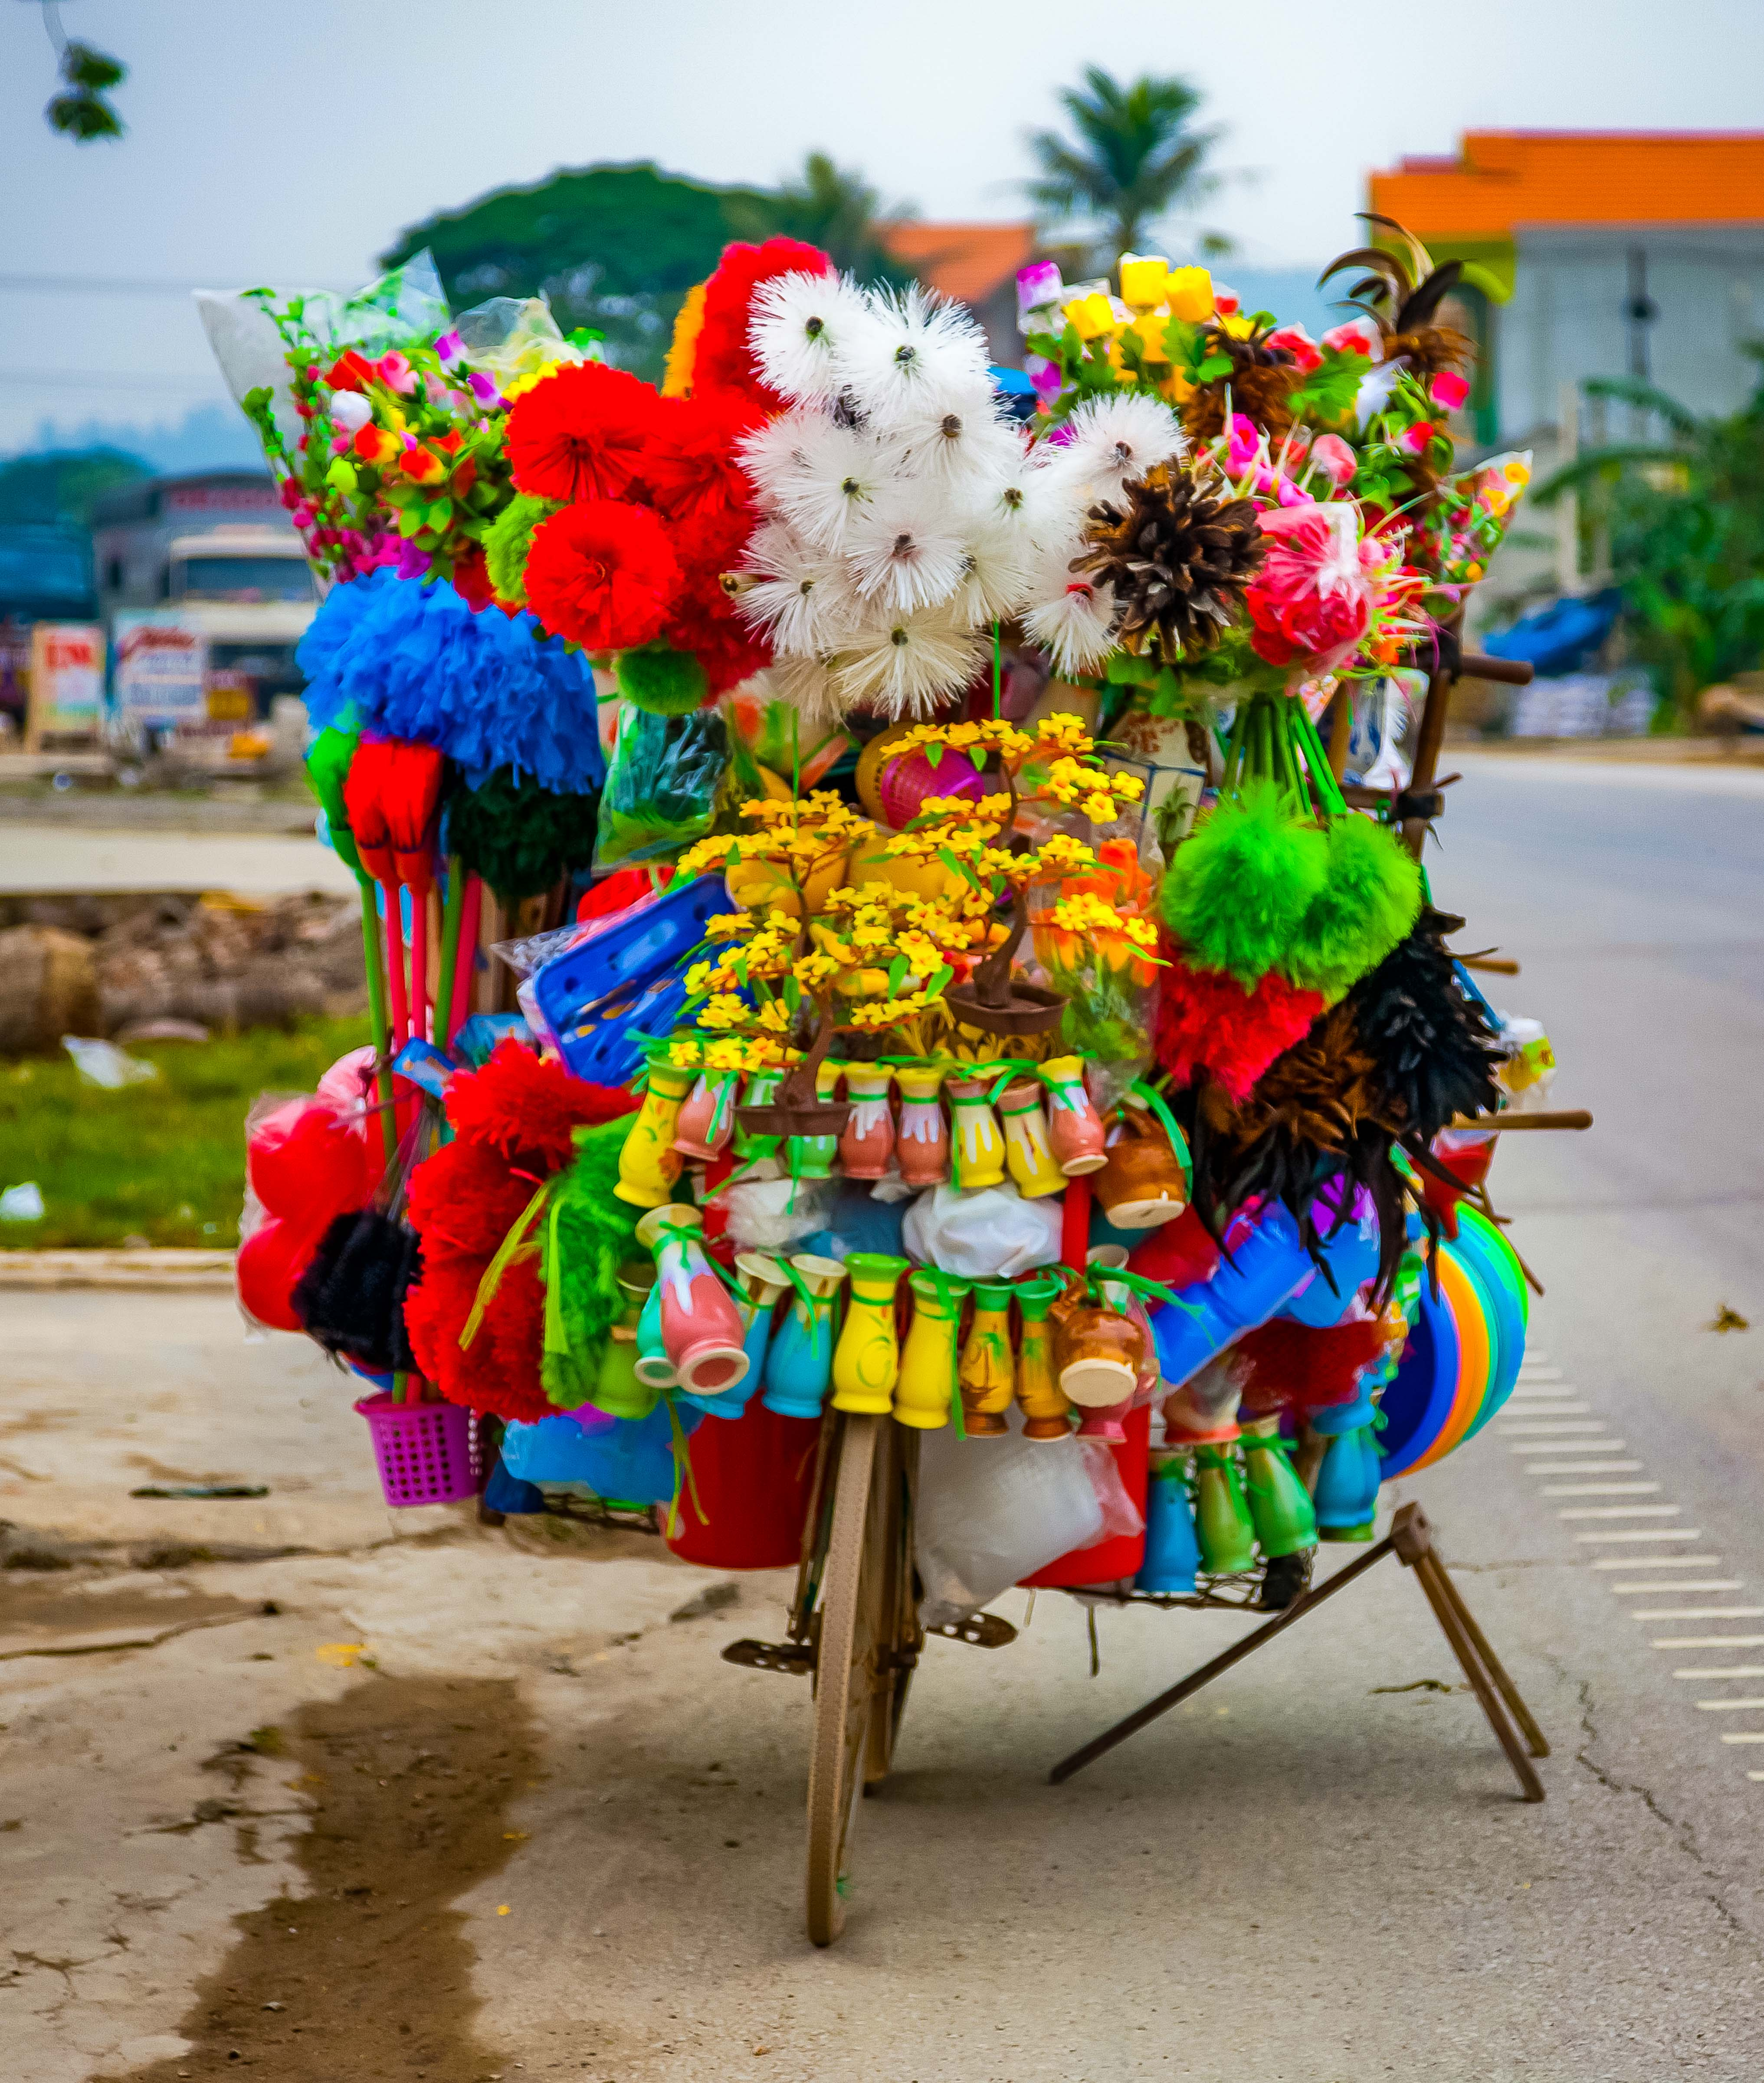 Vietnam, ThanhHoa Prov, Street Vendor Bike, 2010, img_3315